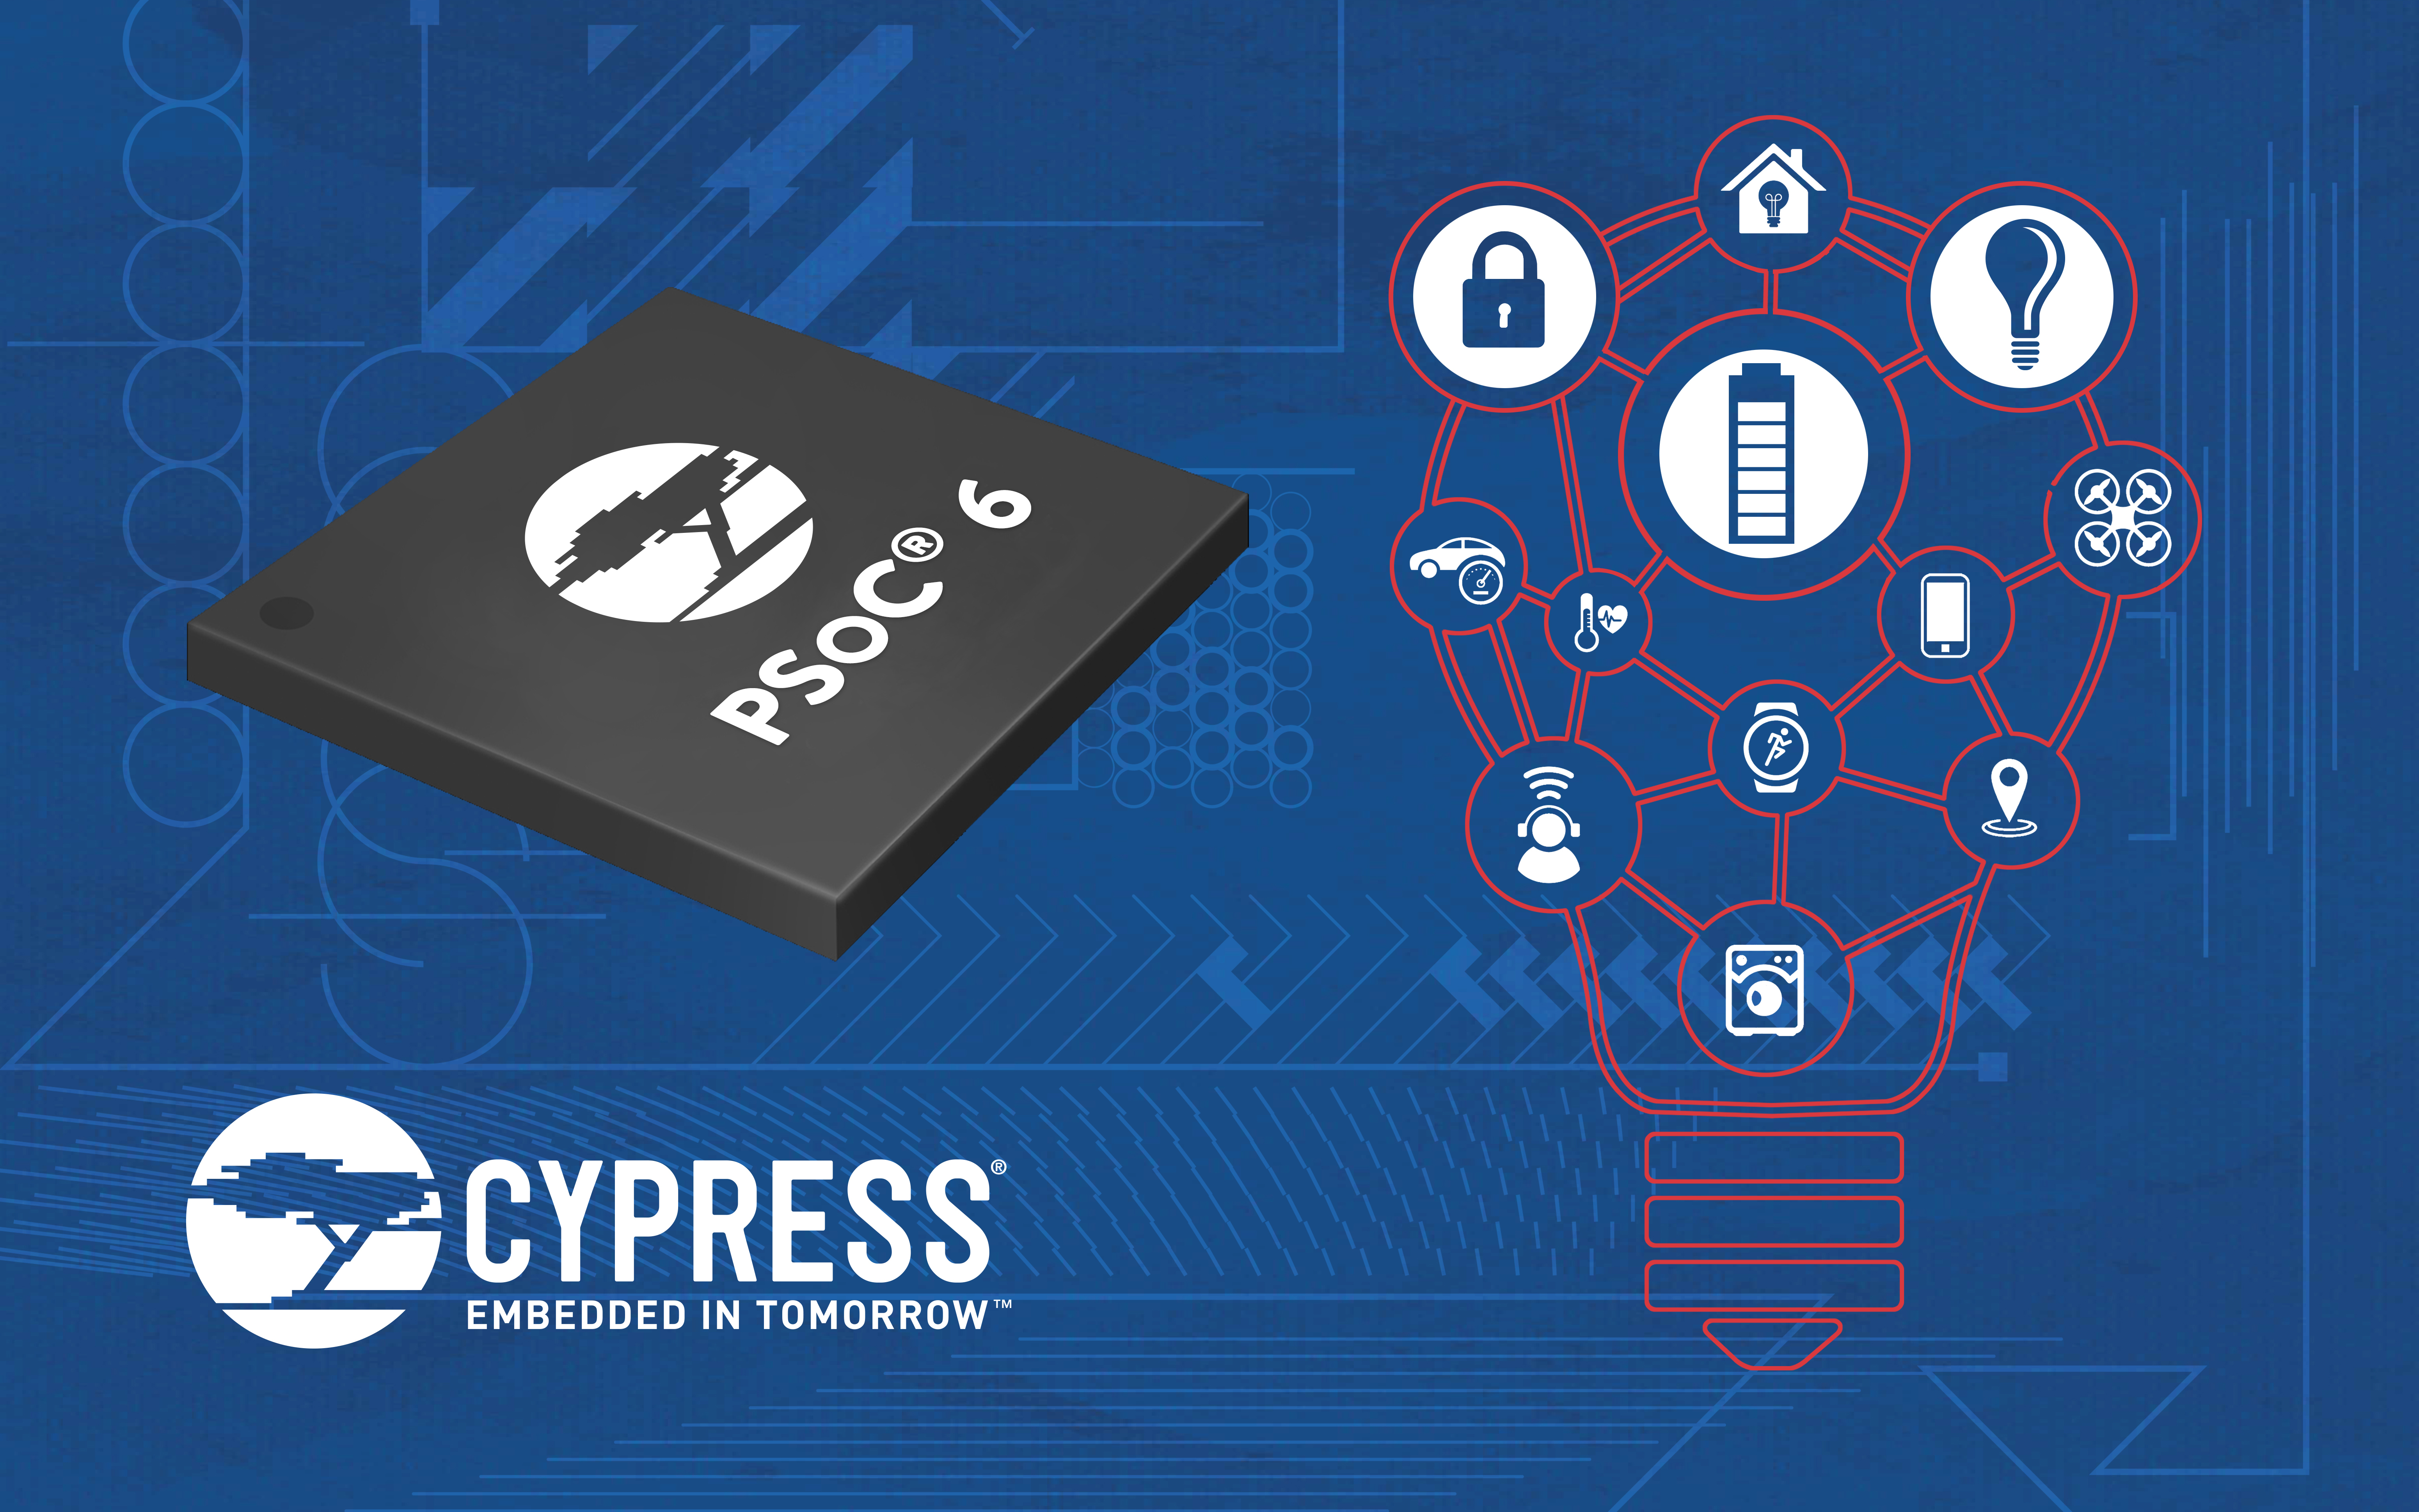 Cypress and ESCRYPT Unveil End-to-end LoRaWAN-based Security